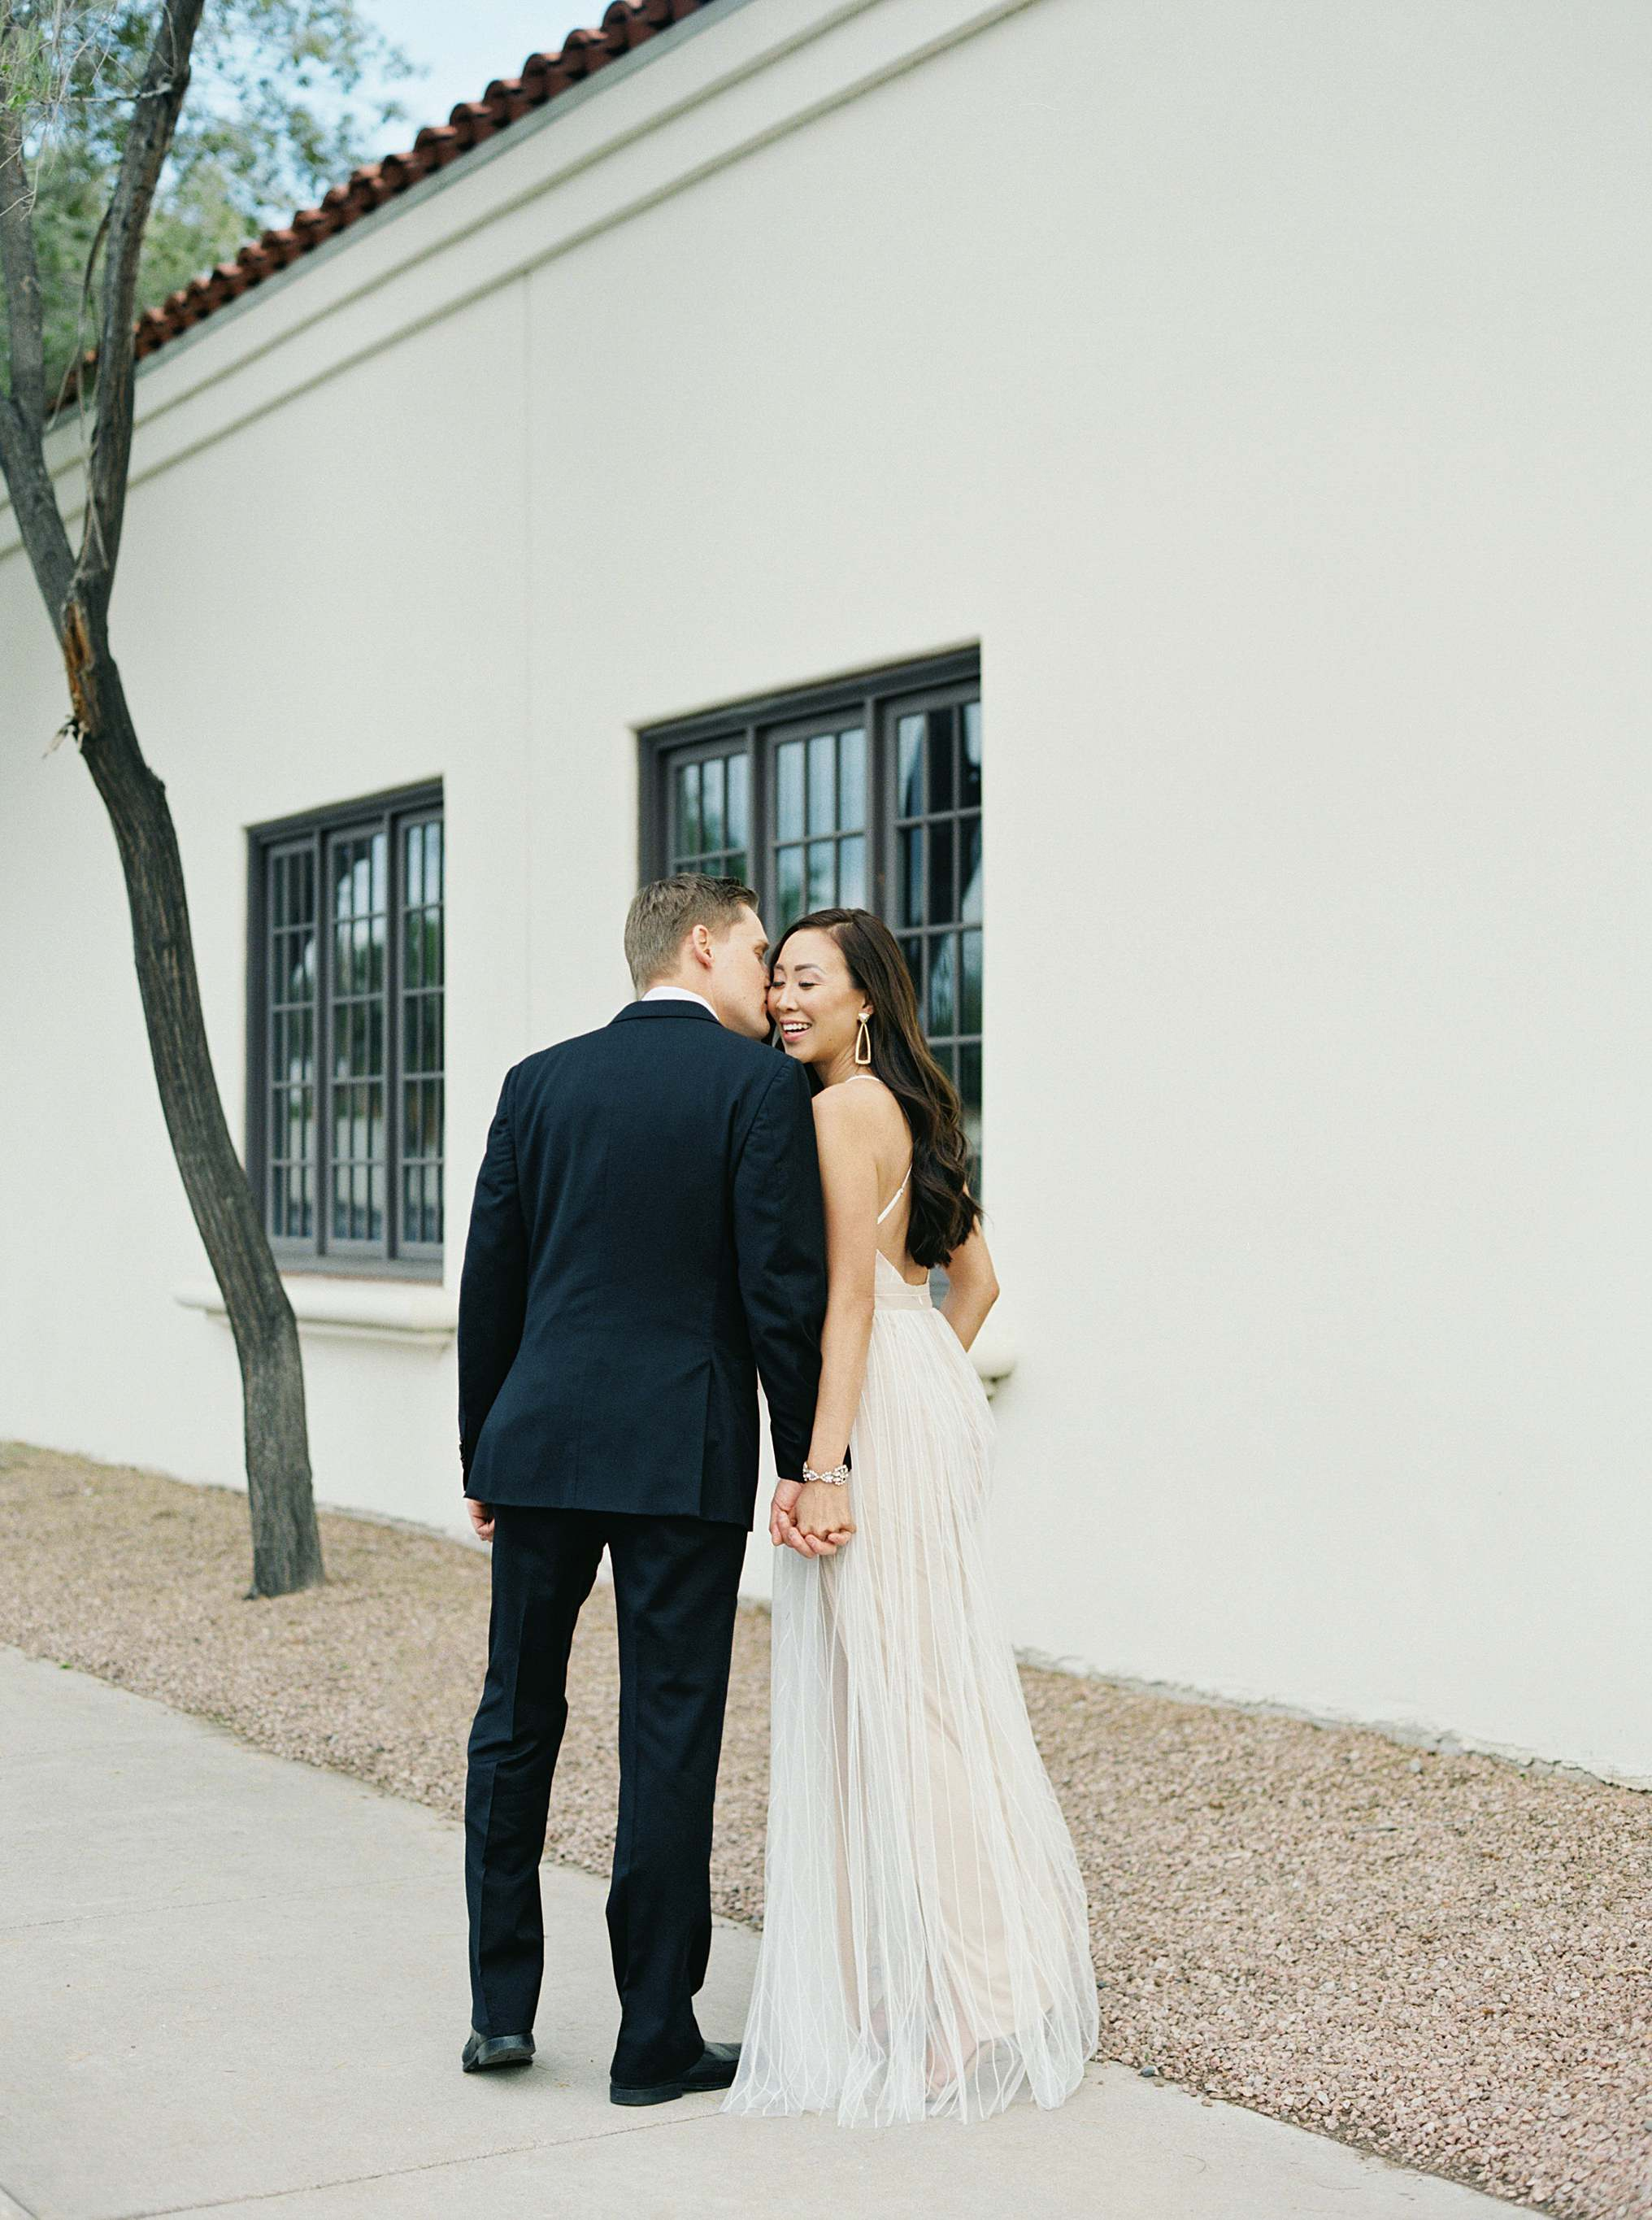 couples engagement pose engagement wedding shoot Inspo bridal engagement photo idea white tulle dress glam engagement shoot brandy Jackson film photographer lifestyle blogger Diana elizabeth